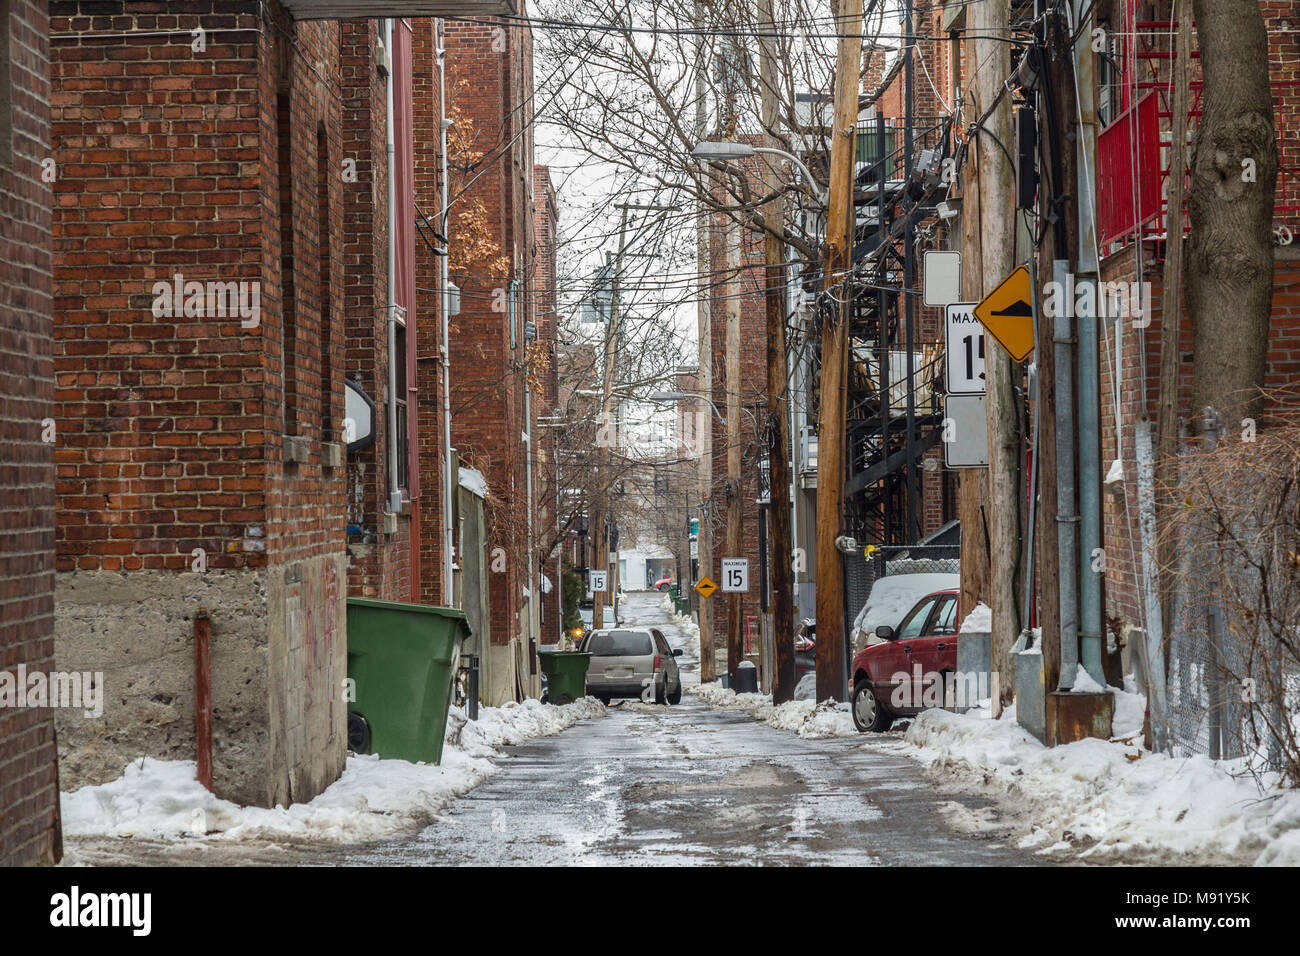 Typical North American residential dead-end alley street covered in snow in a residential part of Montreal, Quebec, Canada  Picture of a dilapidated a - Stock Image